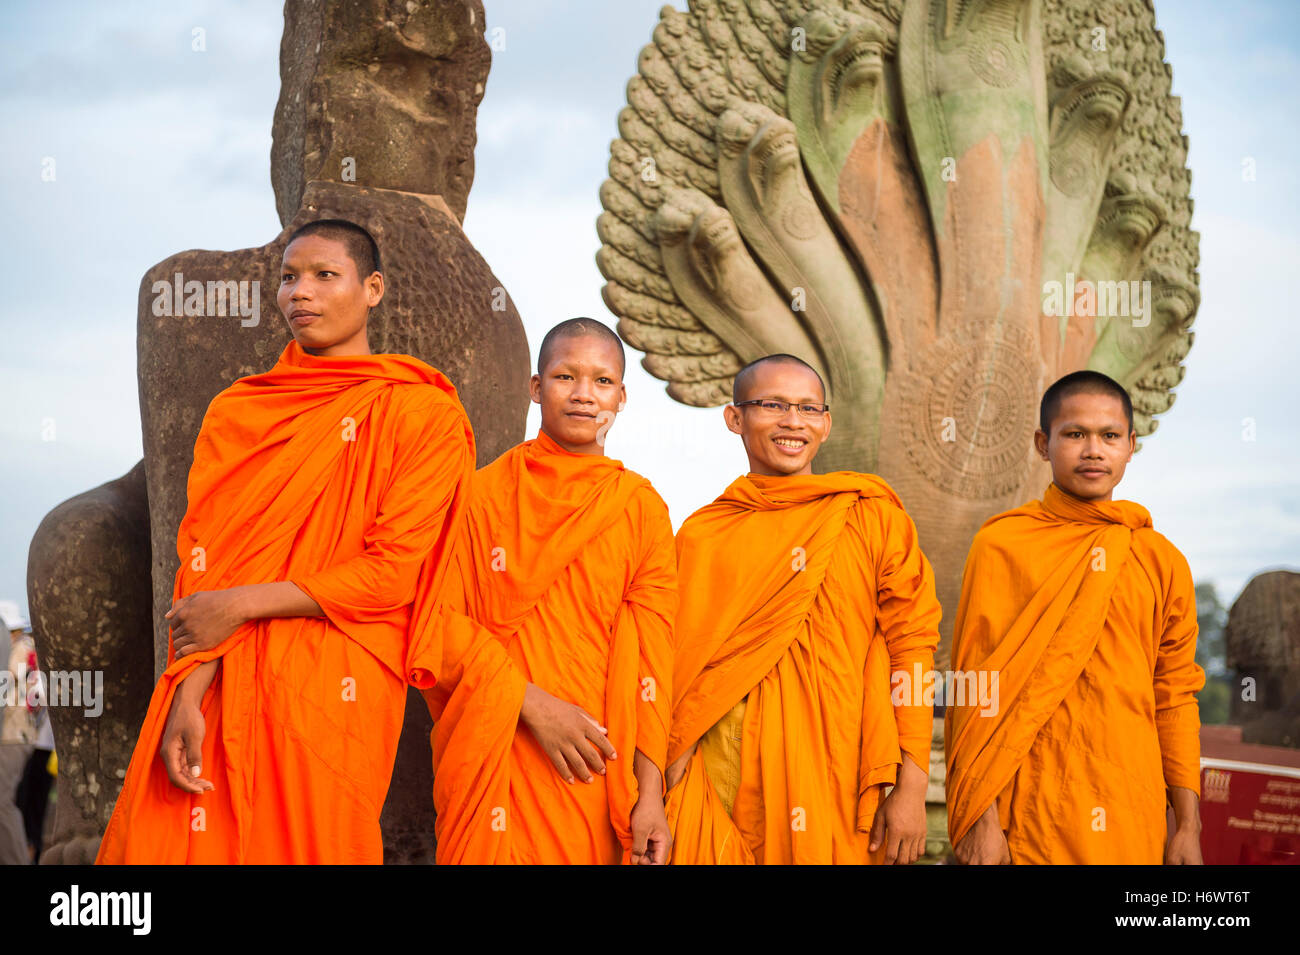 SIEM REAP, CAMBODIA - OCTOBER 30, 2014: Novice Buddhist monks in orange robes pose in front of the entrance to Angkor - Stock Image